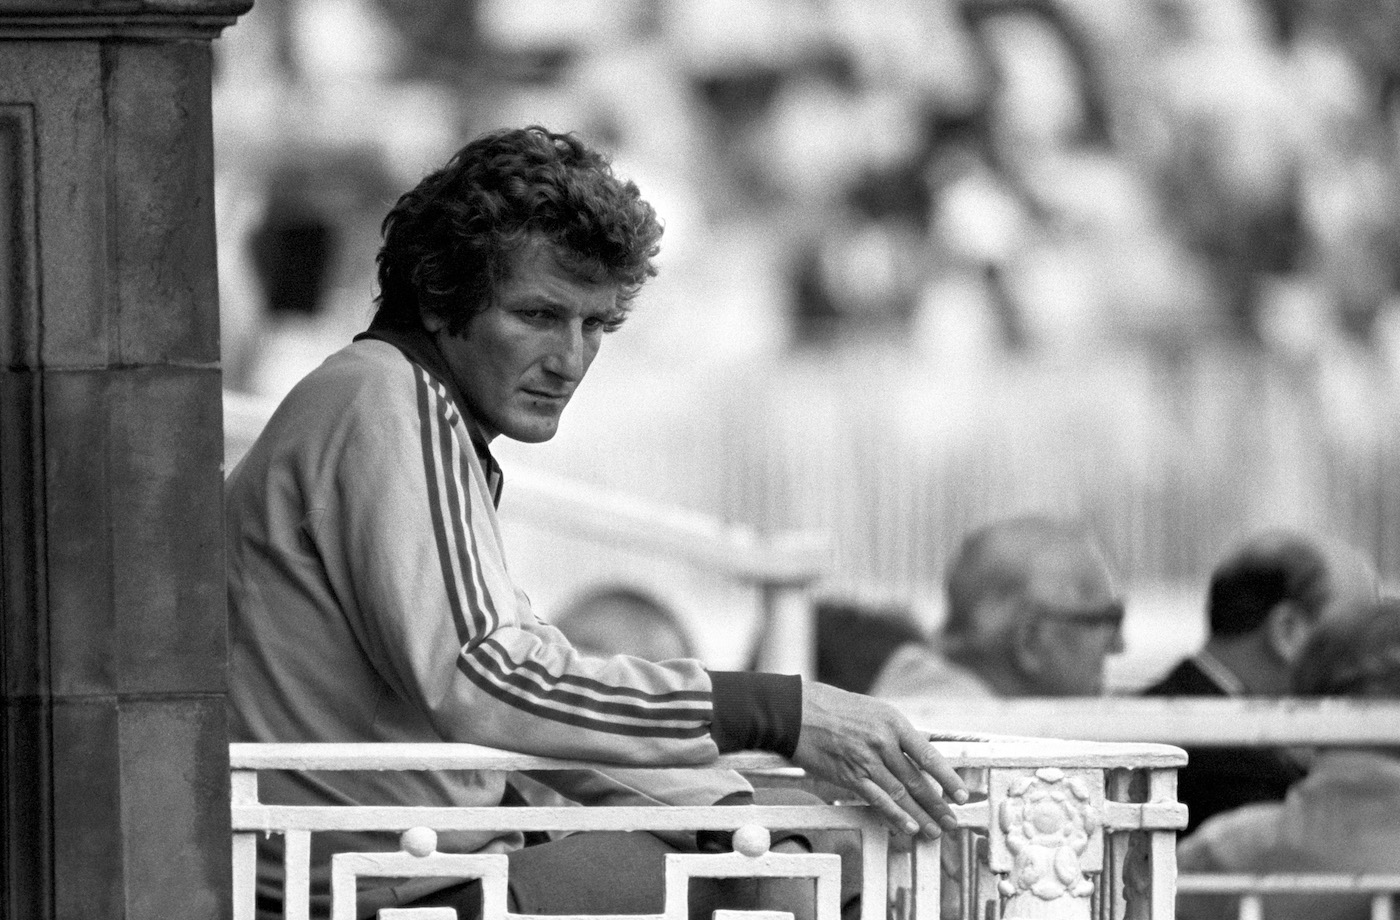 Bob Willis sits out the Lord's Test after failing a fitness test